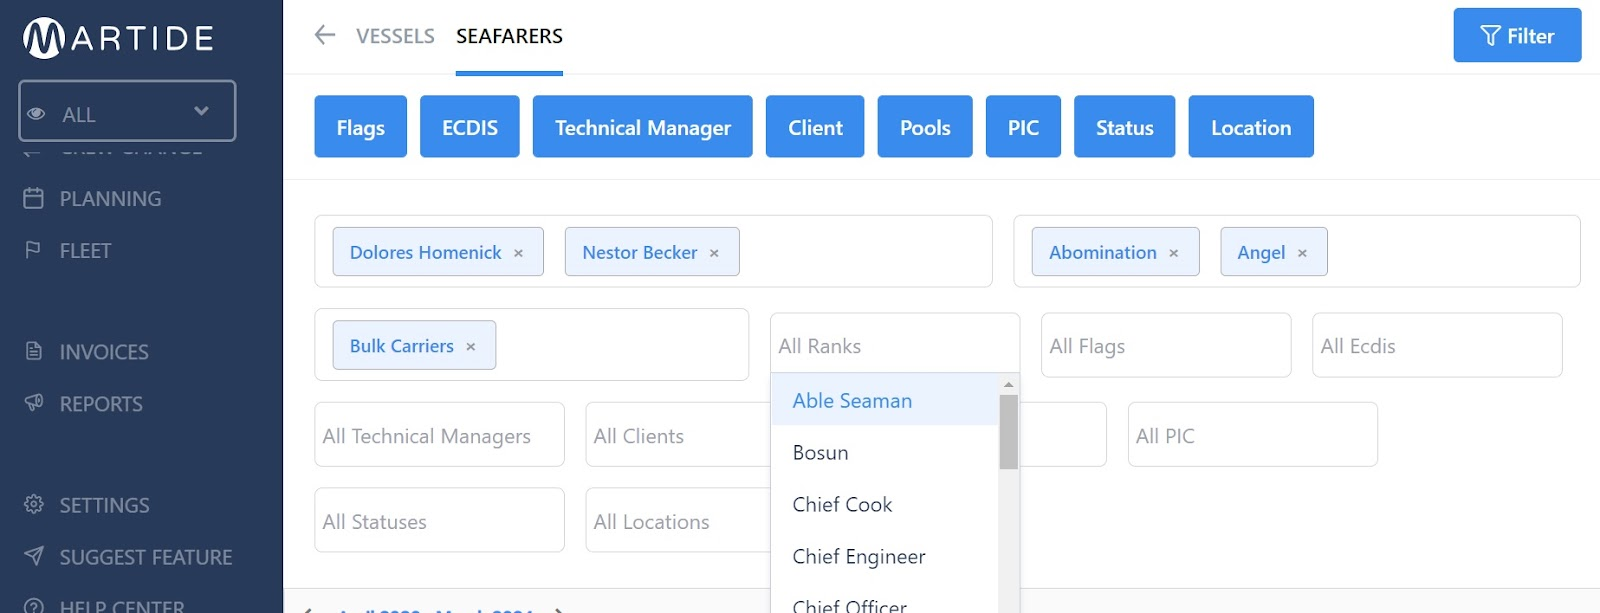 screenshot of the seafarers page showing the filters